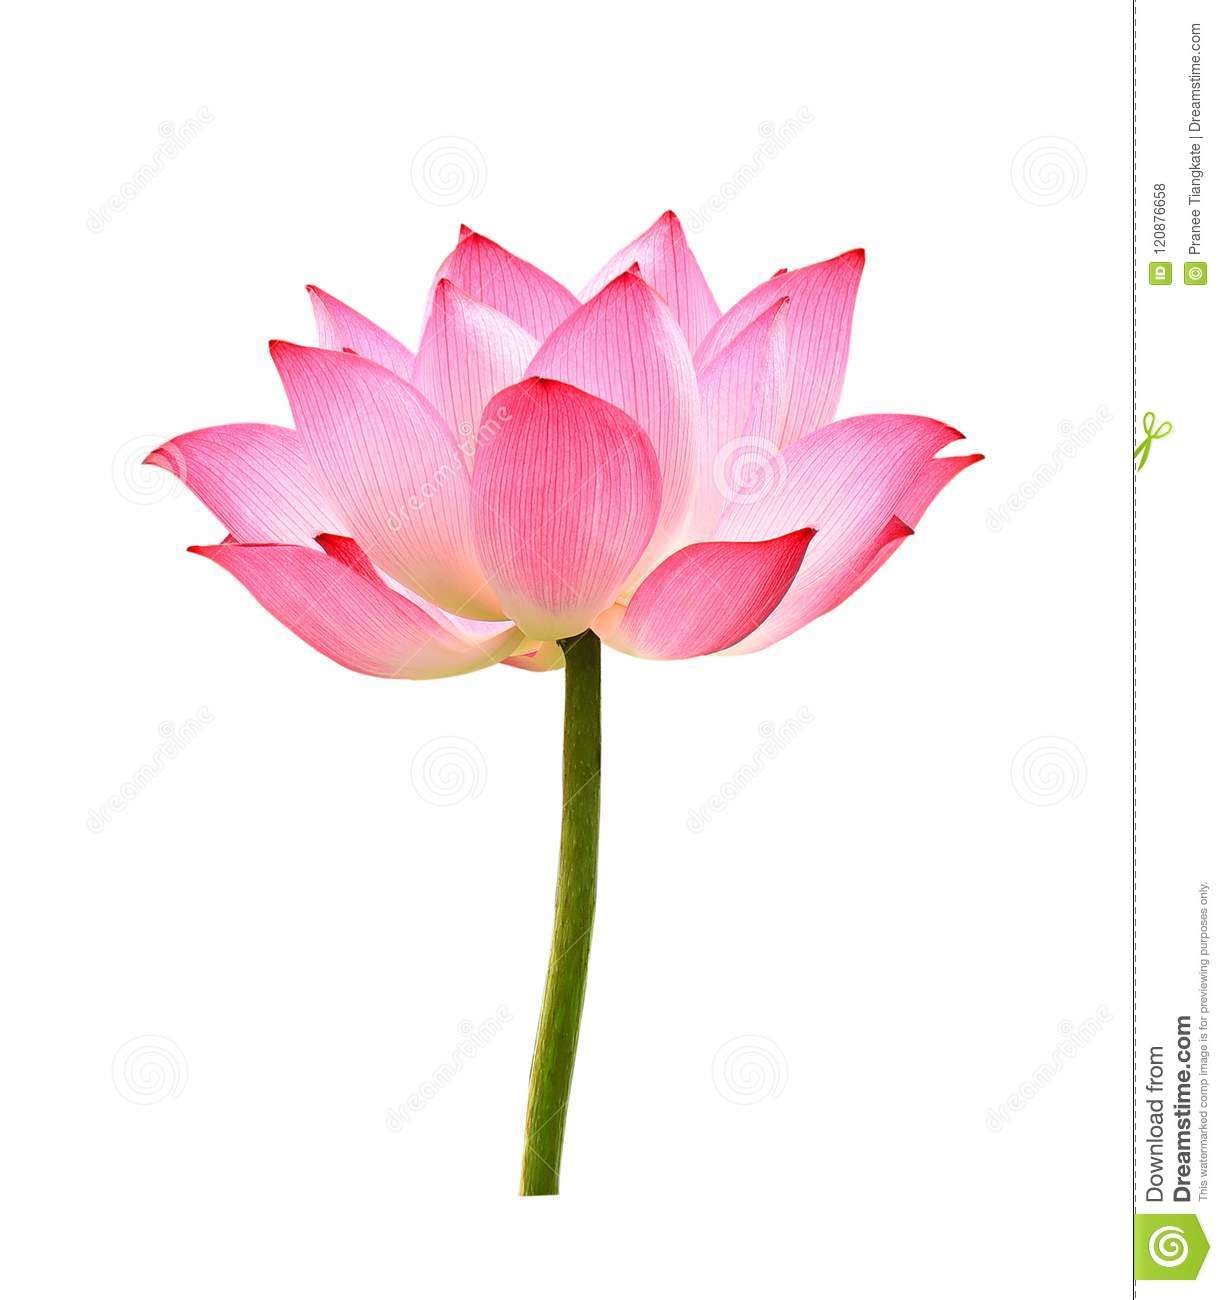 The Lotus Flower On White Background Stock Photo Image Of Bloom